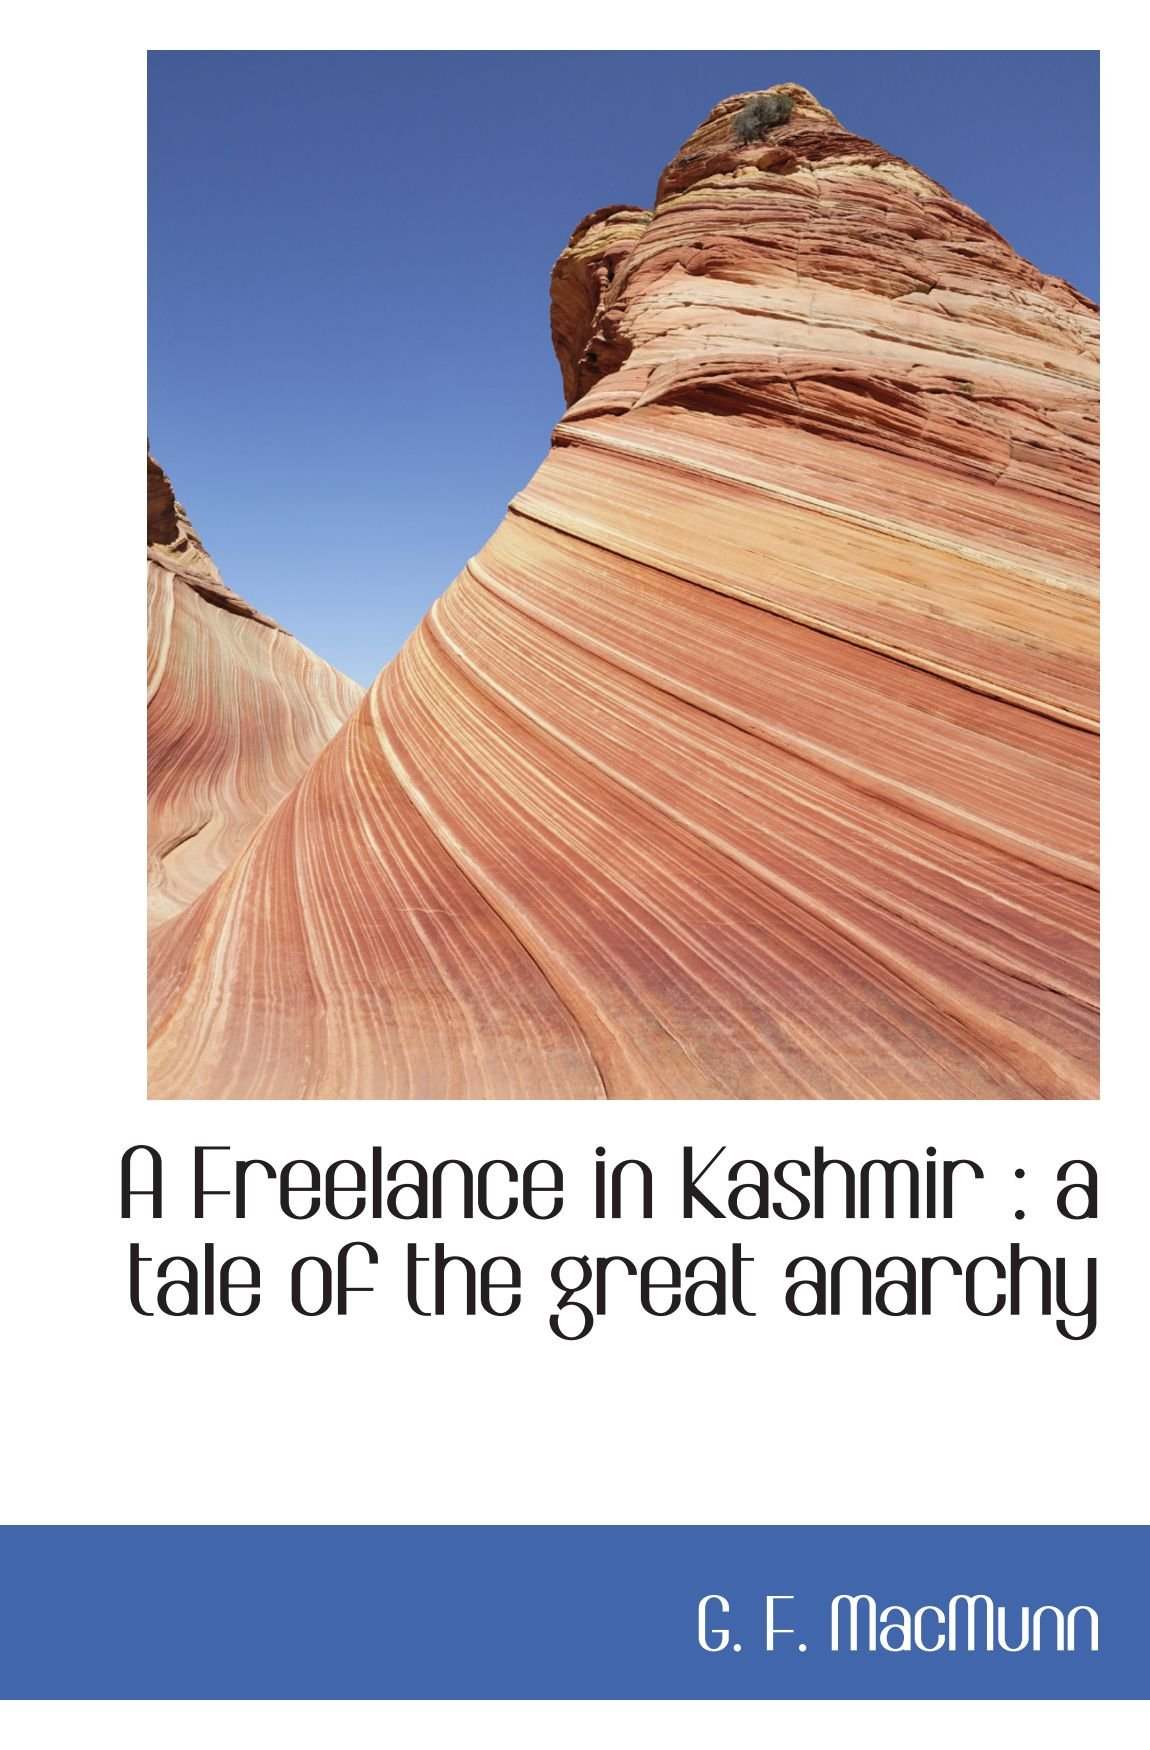 Read Online A Freelance in Kashmir : a tale of the great anarchy PDF